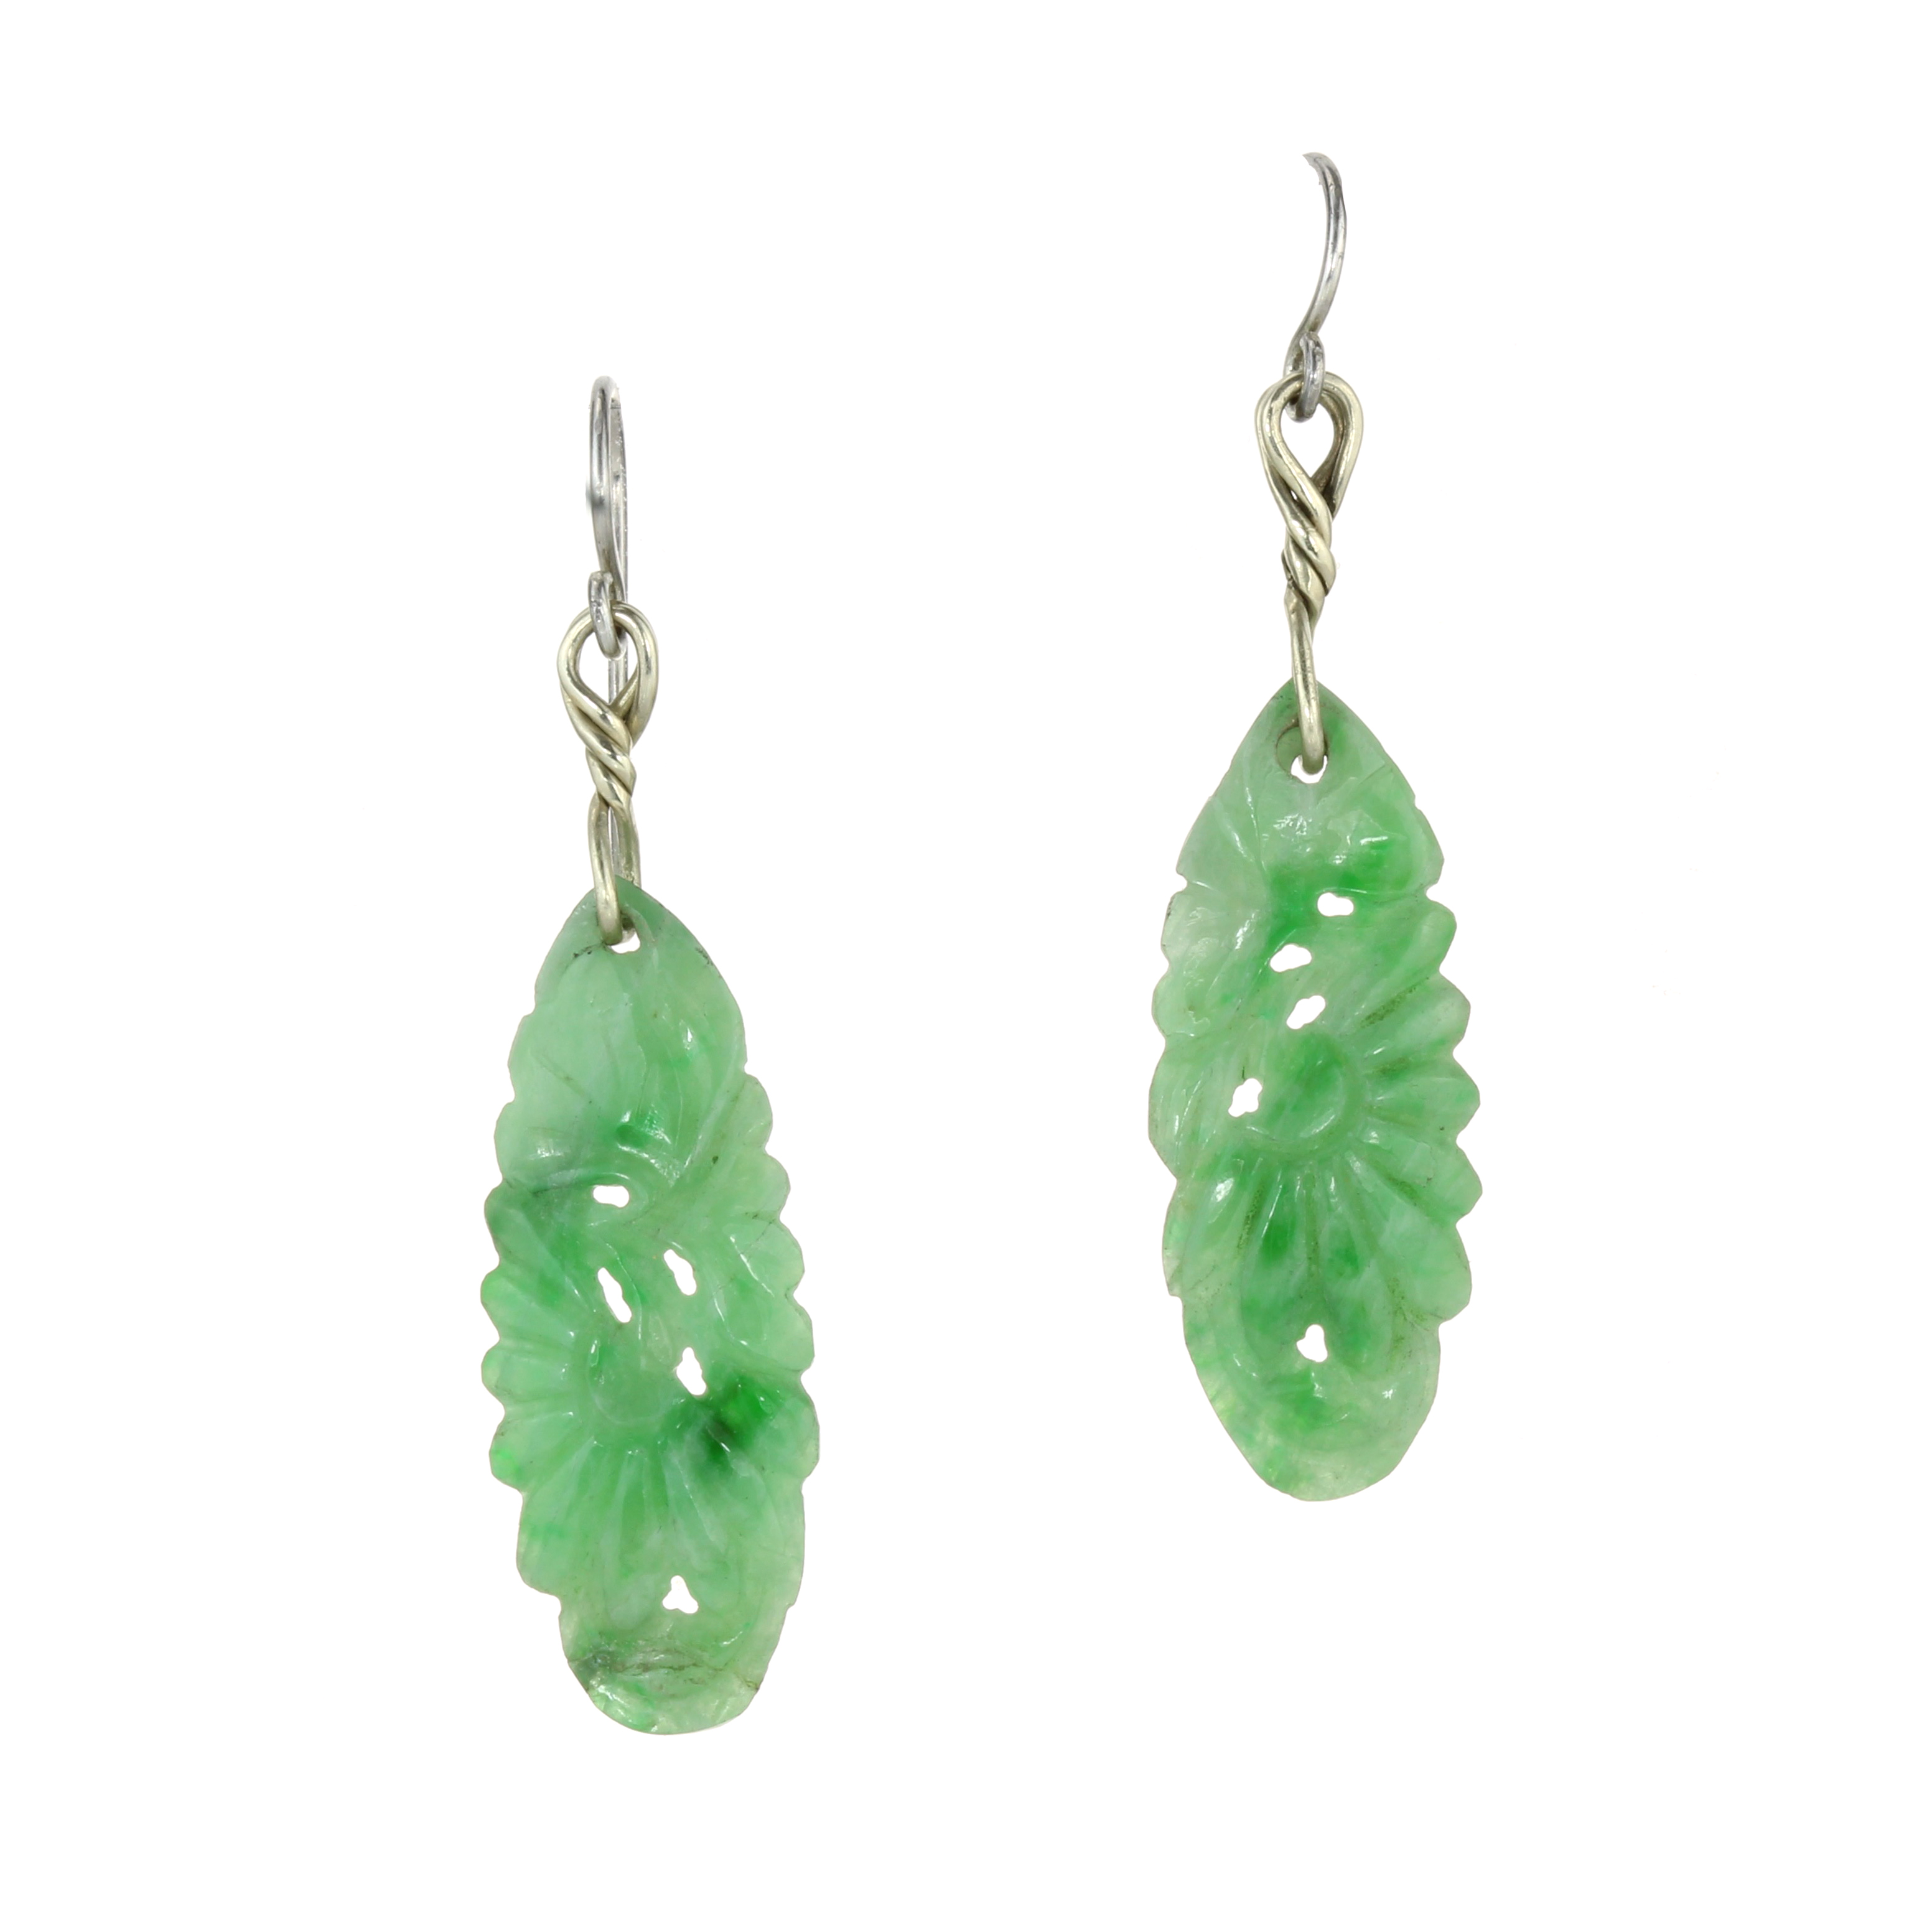 Los 23 - AN PAIR OF CARVED JADE EARRINGS in white gold and silver, each set with an elongated carved piece of